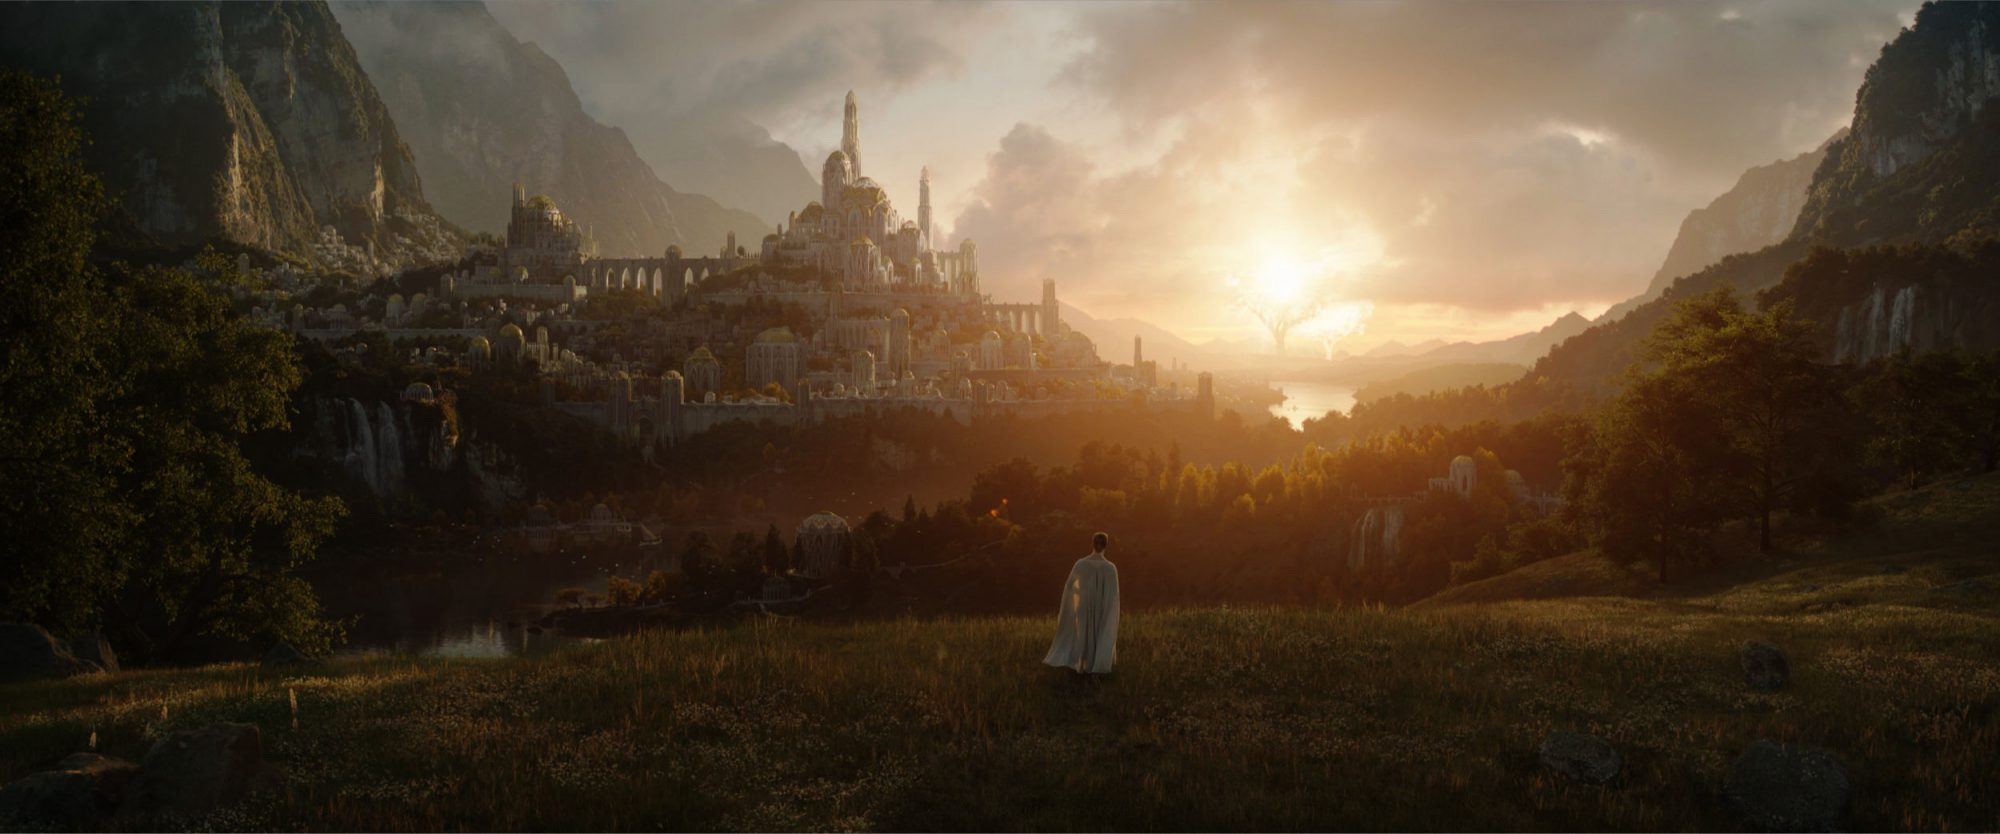 Lord of the Rings Amazon Prime video